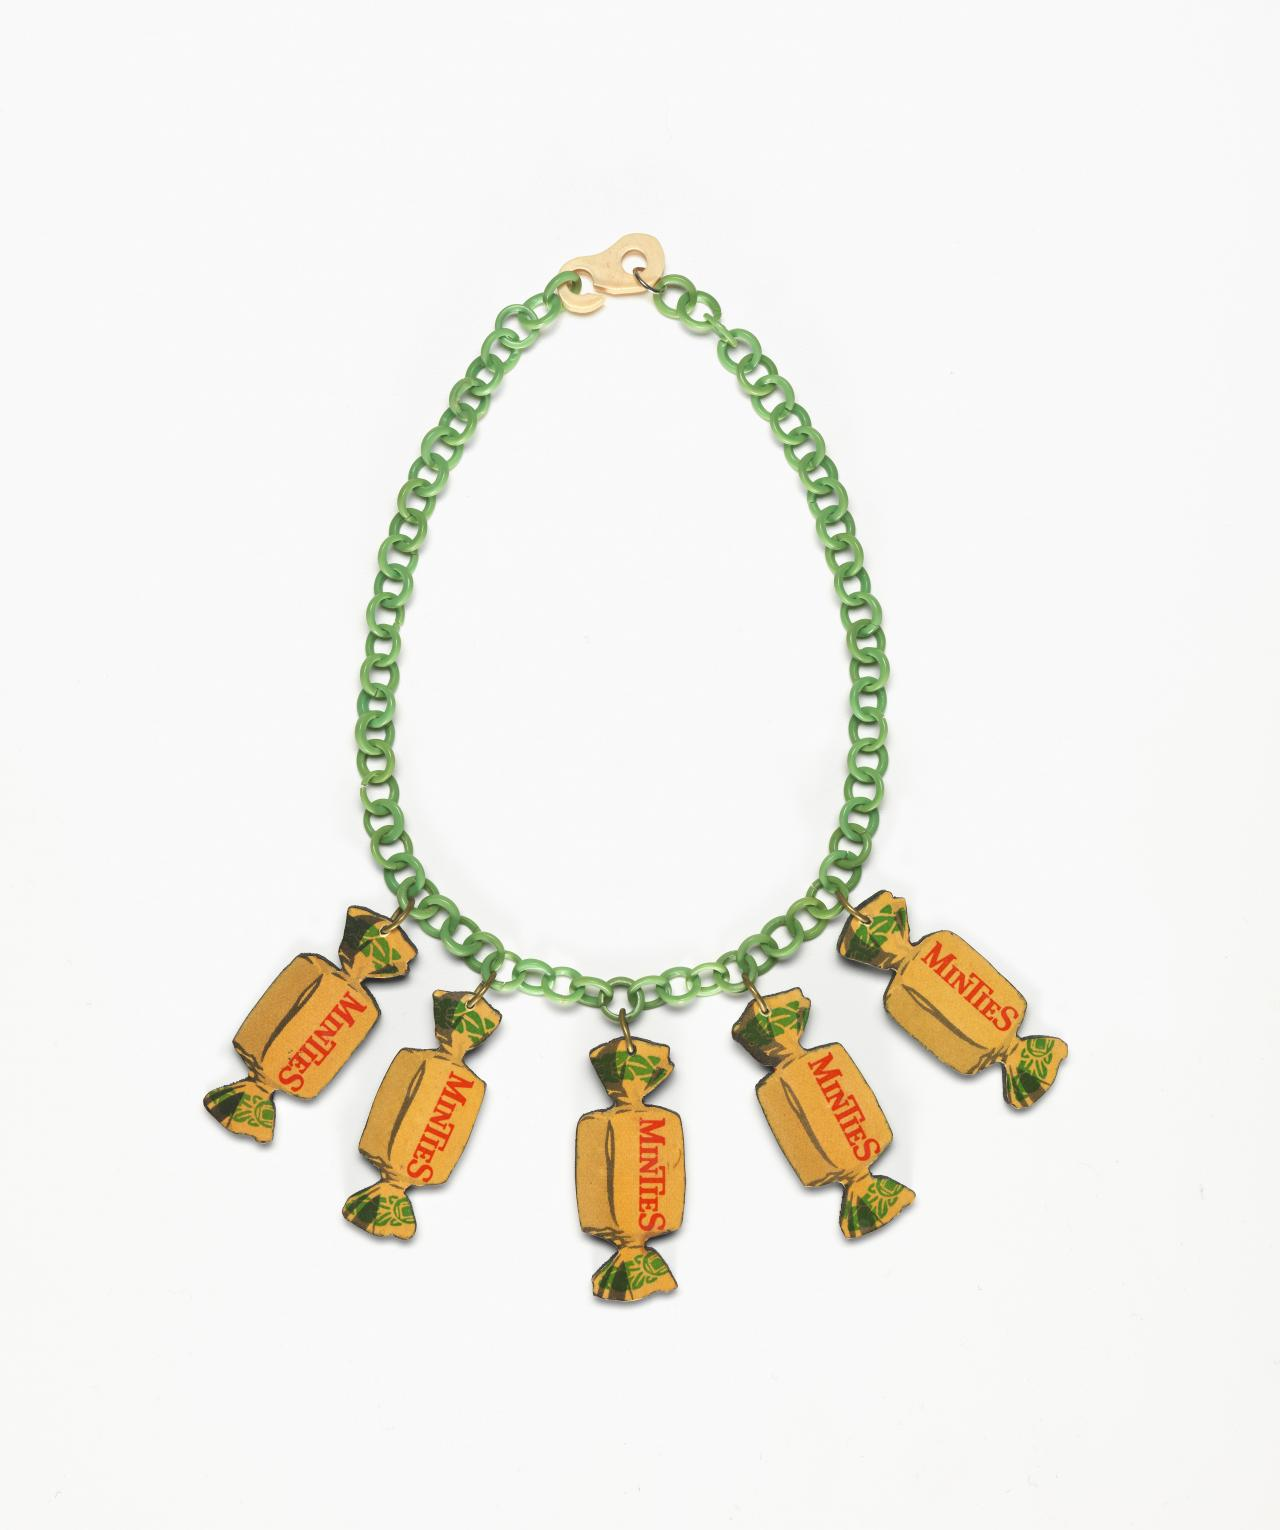 Minties necklace